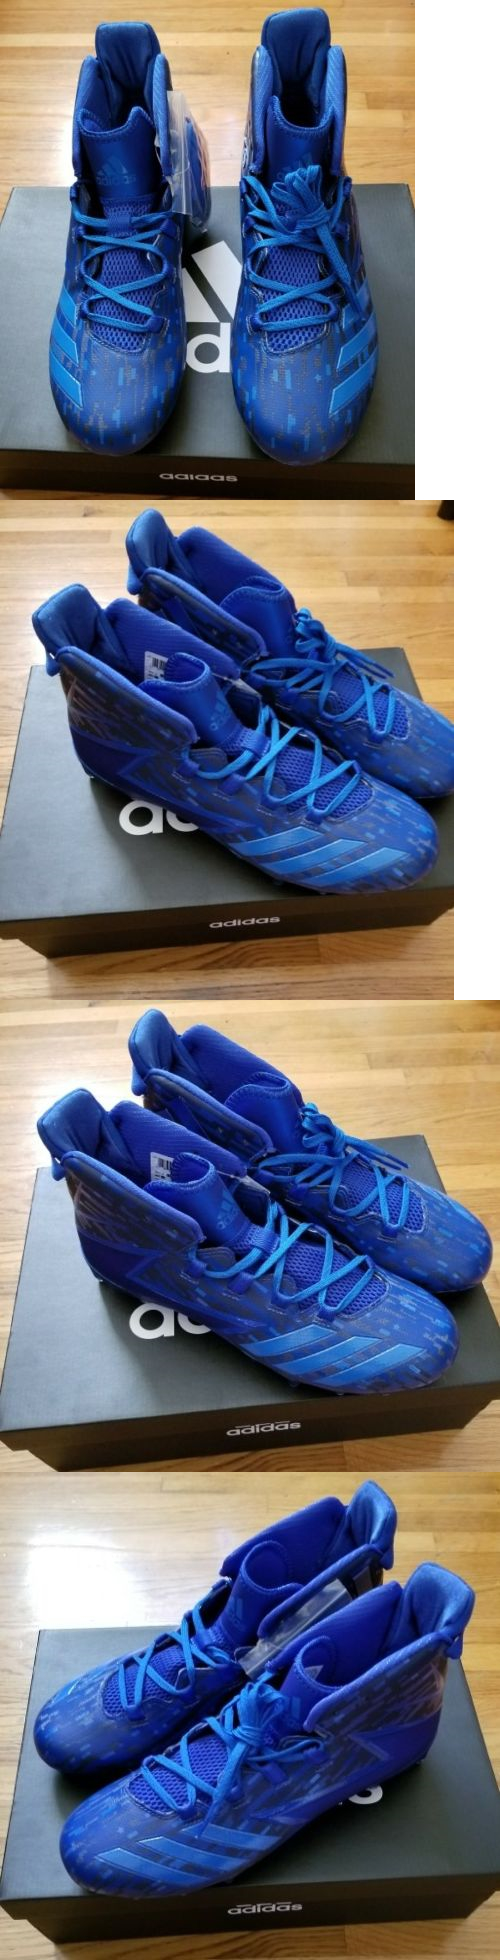 63660f4c7 Men 159116  New Adidas Freak X Kevlar Football Cleats Bw0390 Blue Poblue Men  S Size